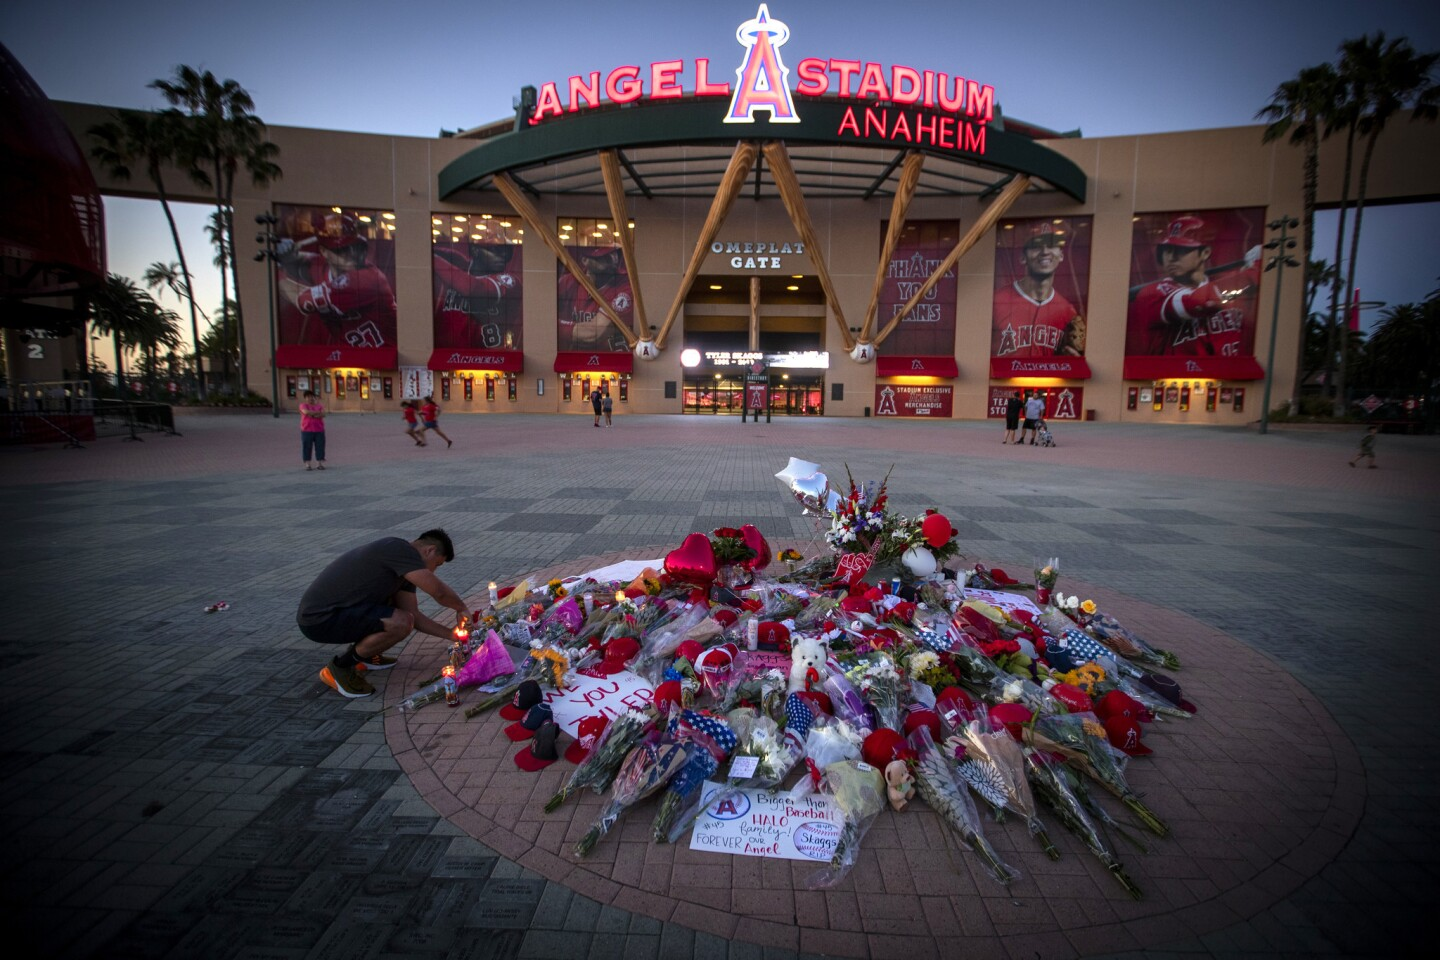 Fans mourn death of Tyler Skaggs